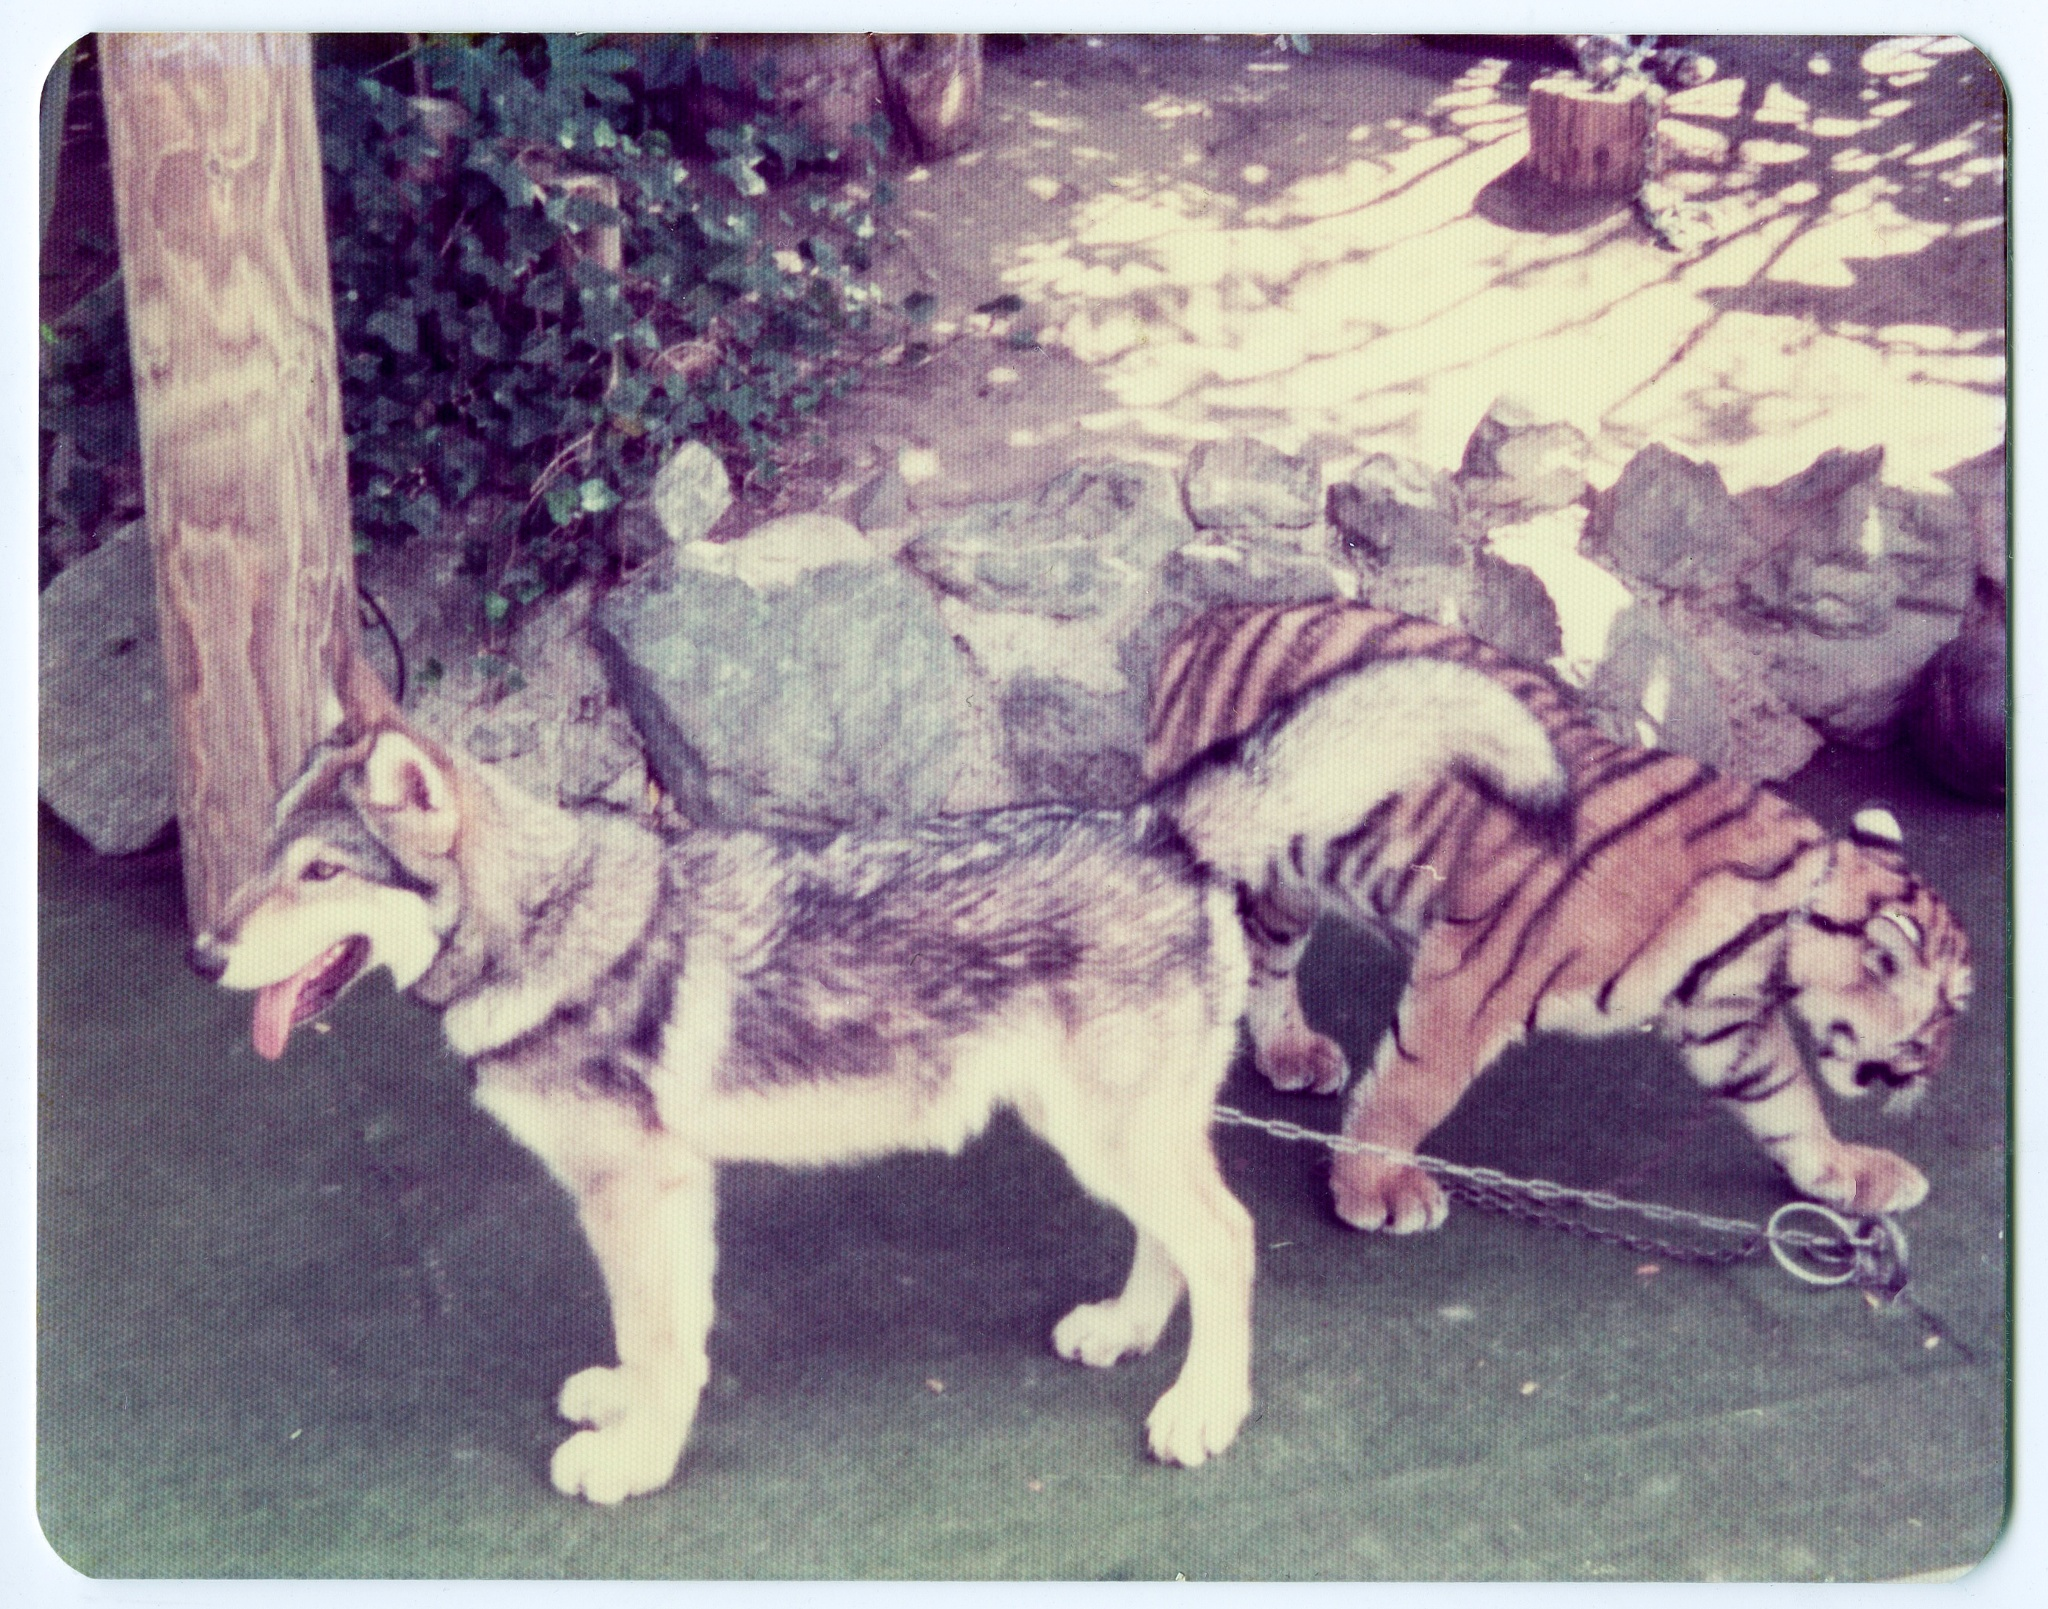 Privately owned tiger tied up with the family dog, 1976 by Martine de Lajudie